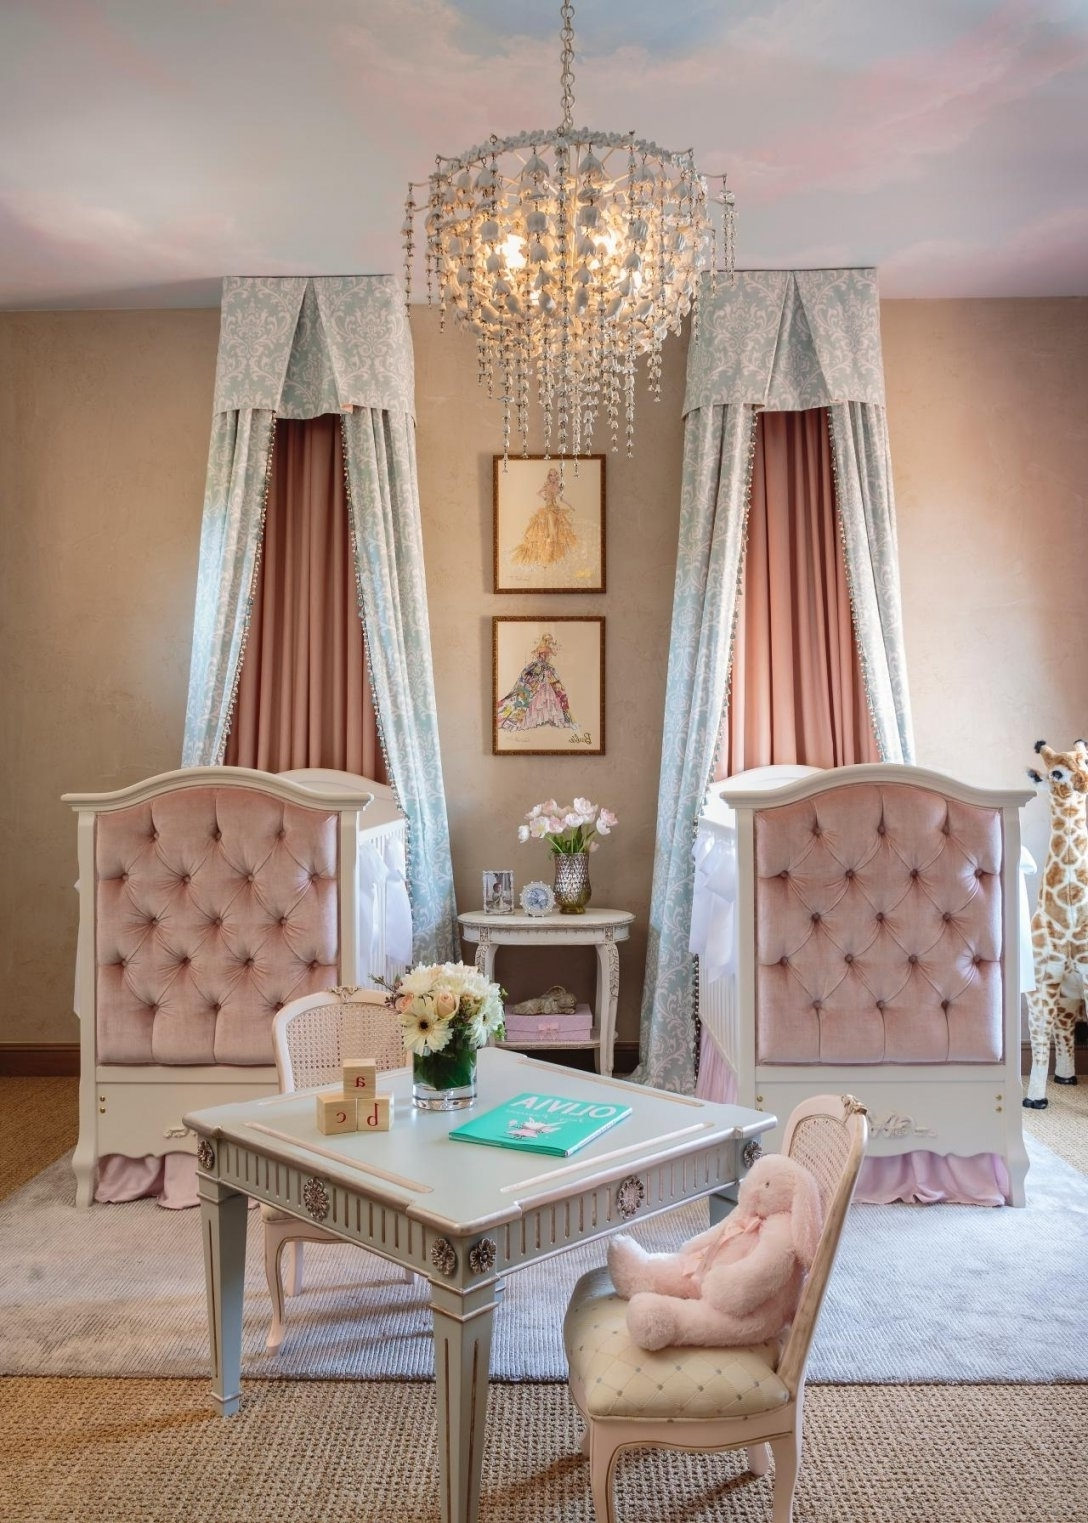 Home Design & Decorating Ideas (View 7 of 15)